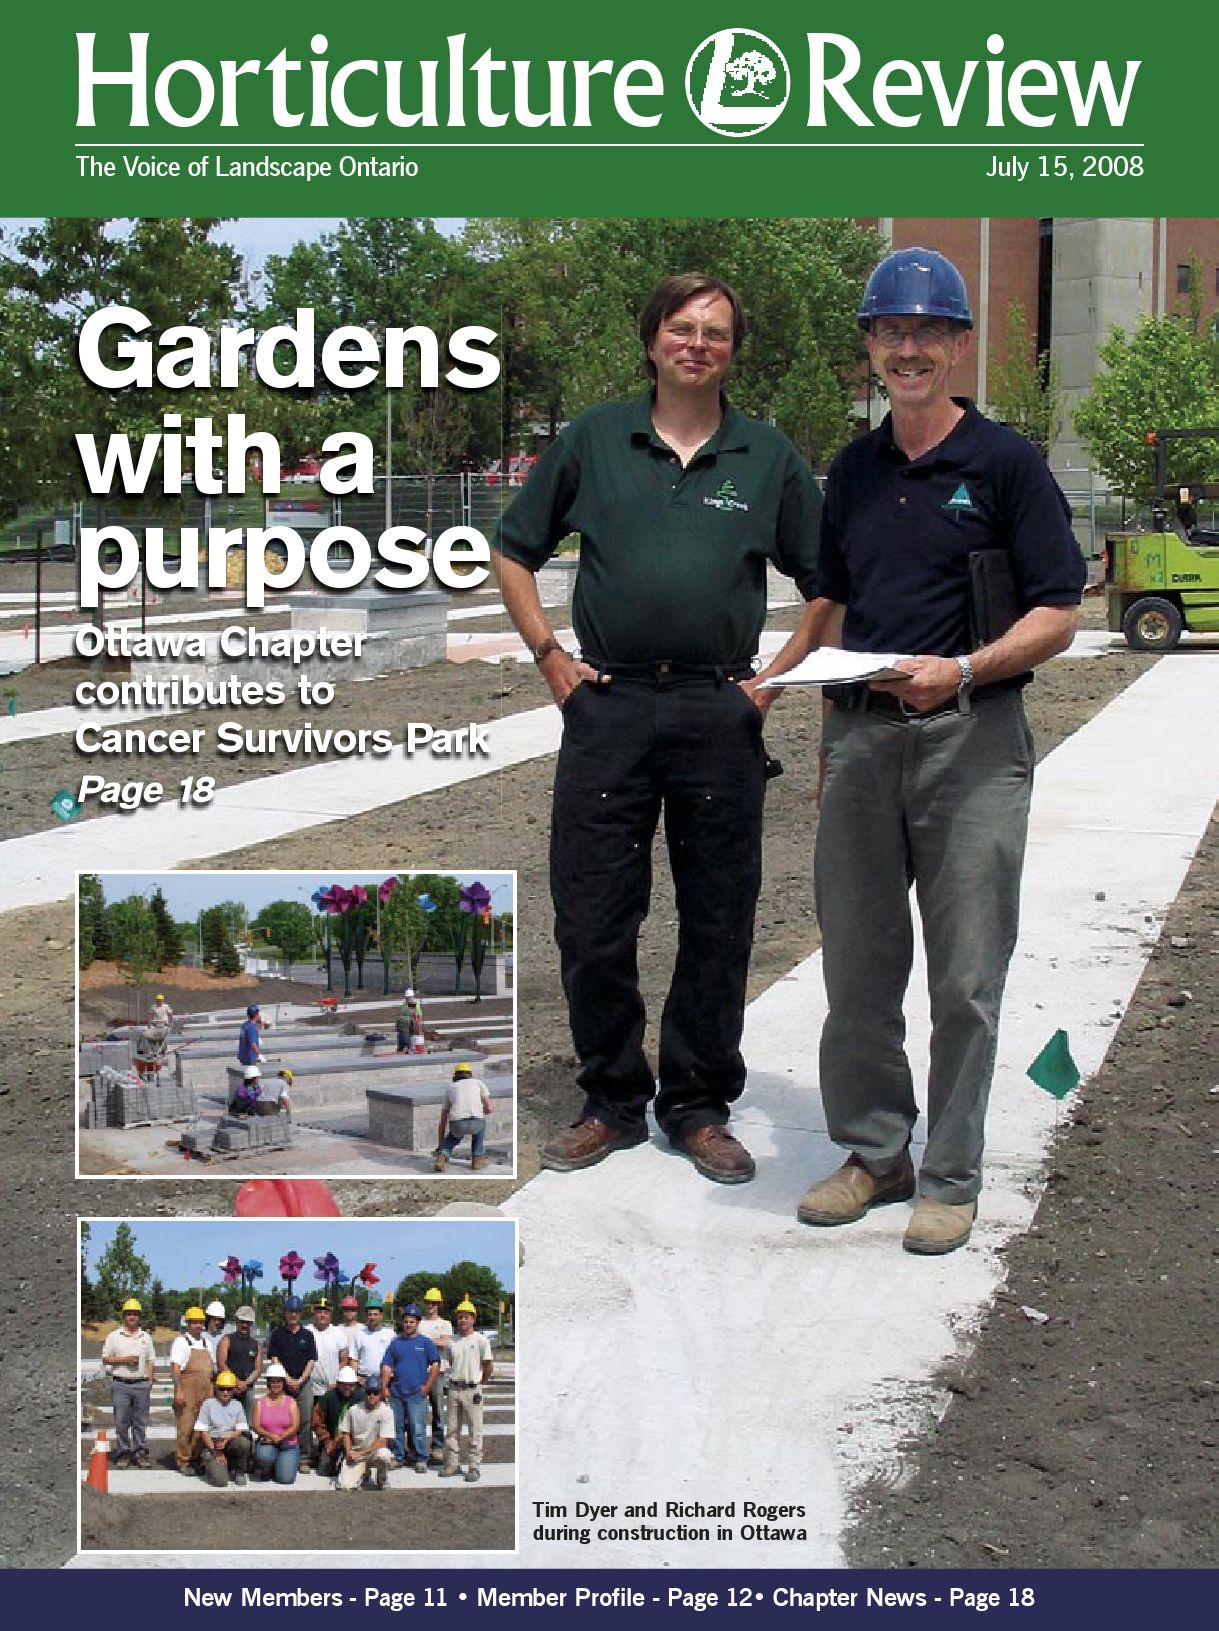 Horticulture Review July 2008 By Landscape Ontario Issuu